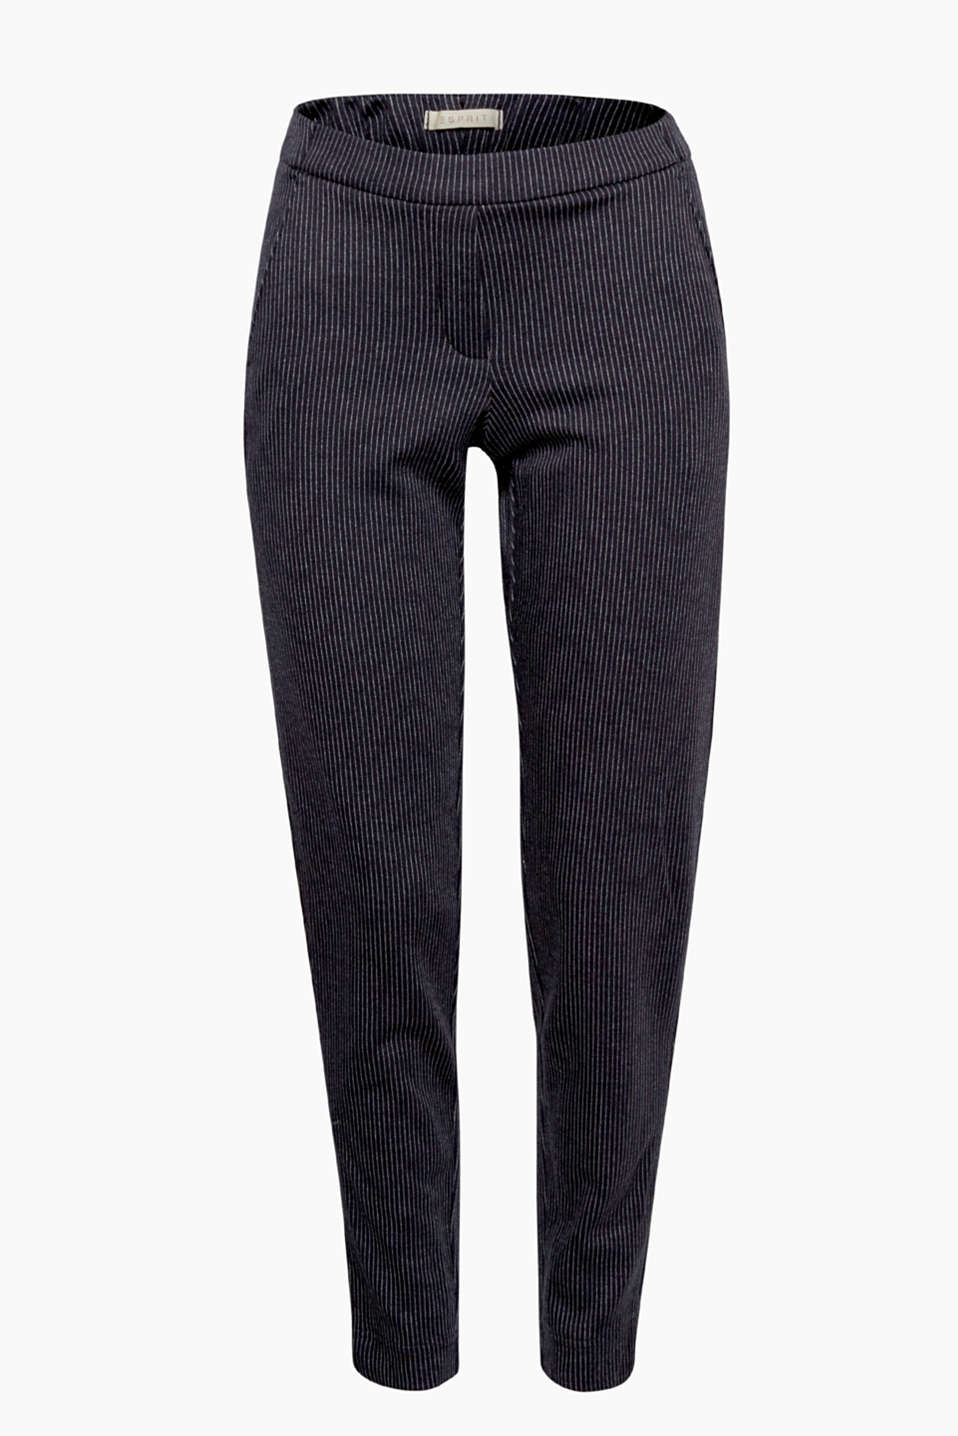 Smart and comfortable: these tracksuit bottoms with pinstripes and an elasticated waistband combine comfort and chic!